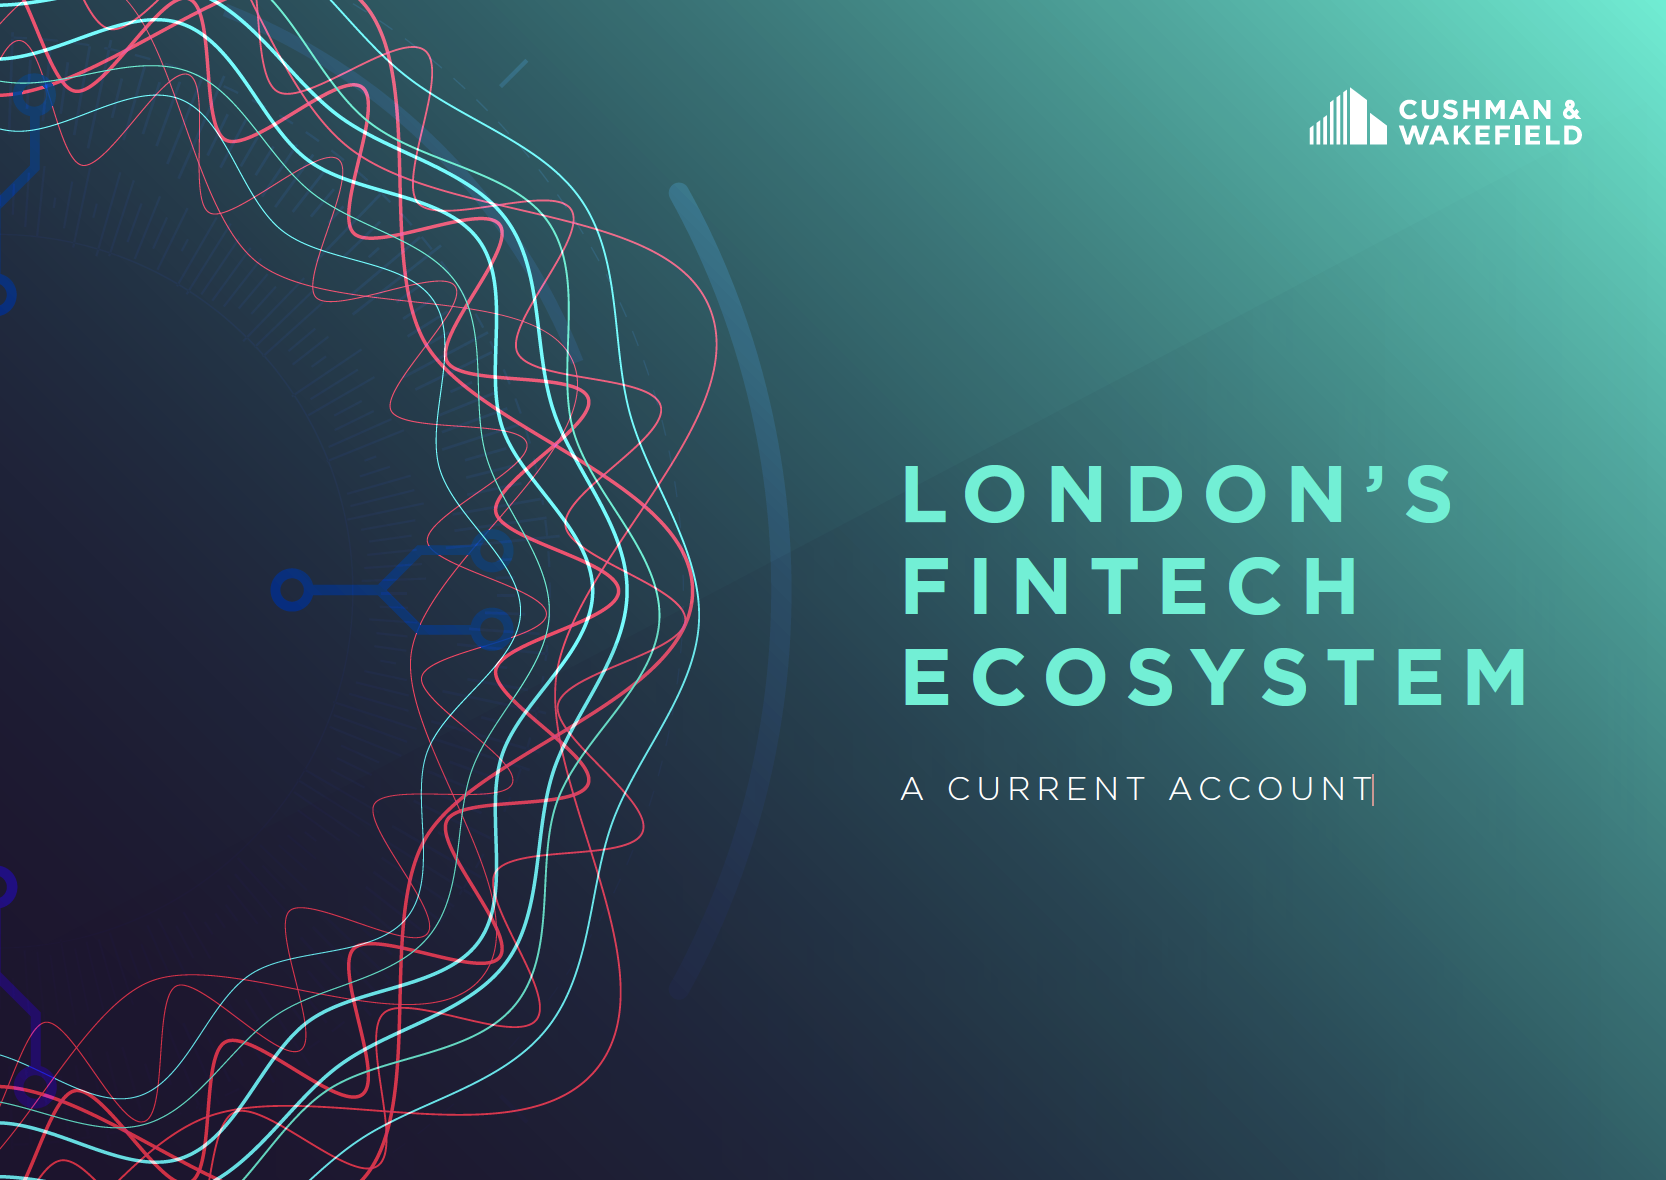 London's Fintech Ecosystem: A Current Account